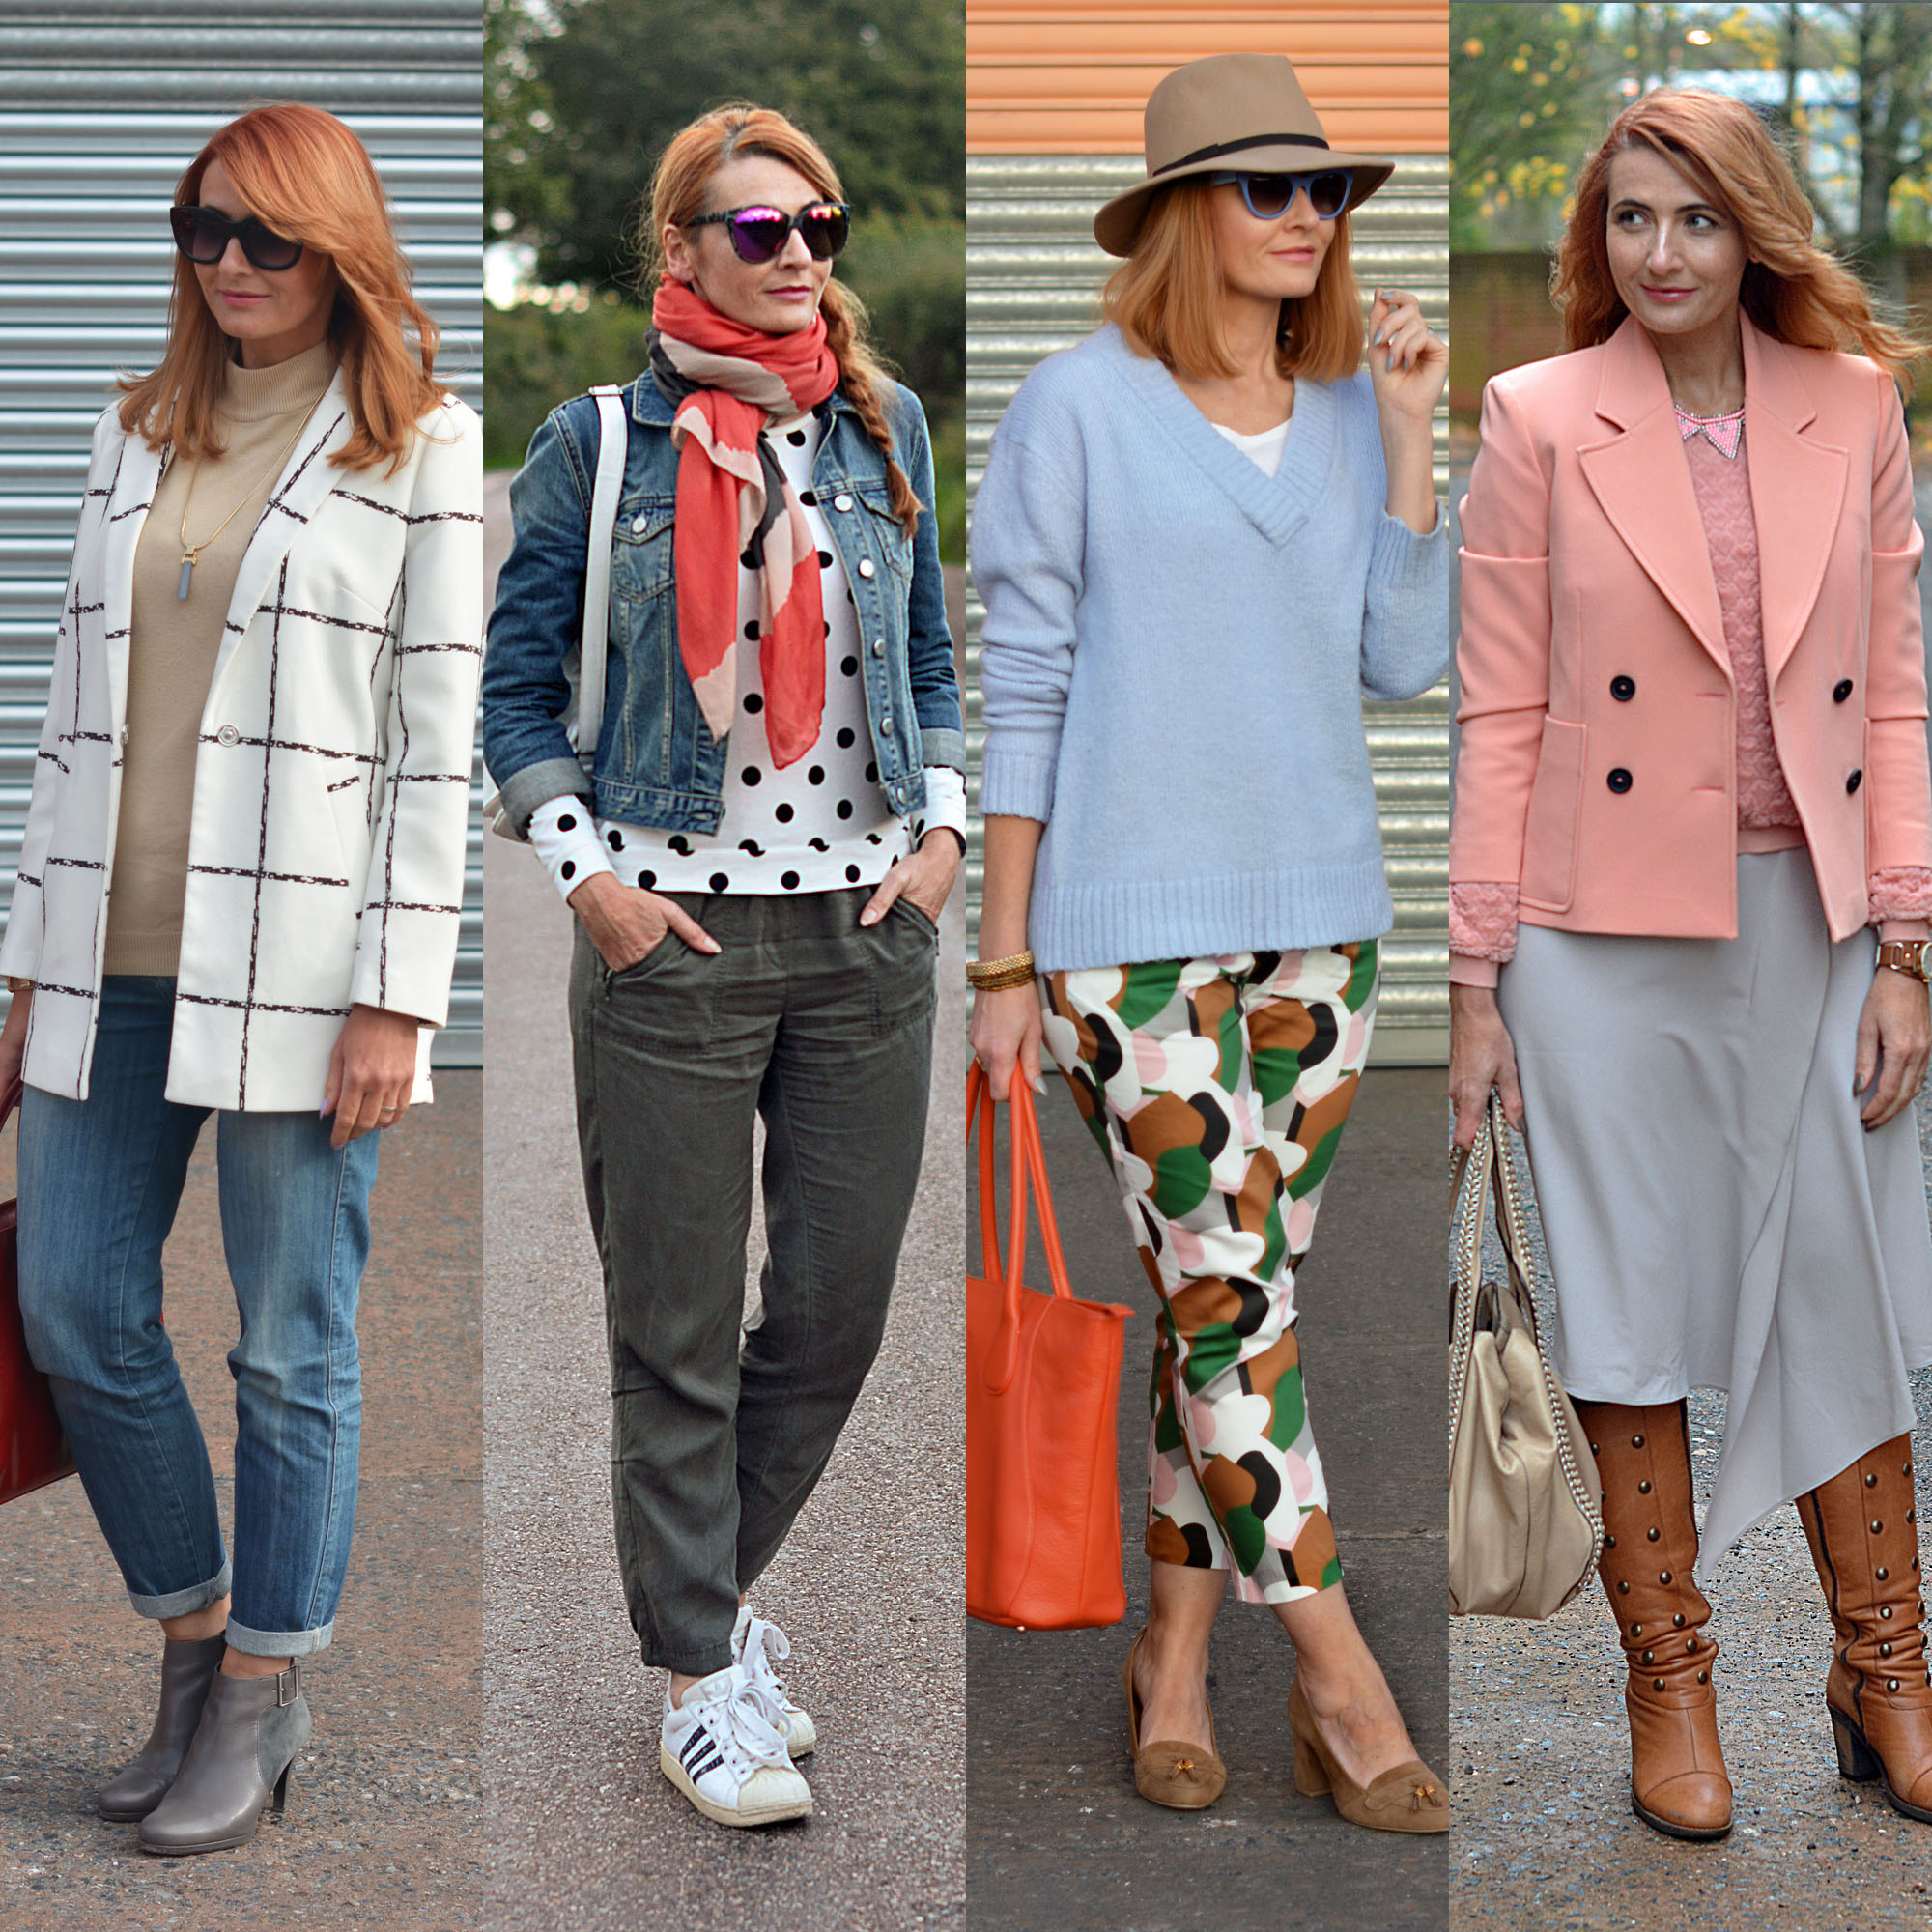 9429cbe384d5e 6 Great Autumn (Fall) Outfit Ideas, Over 40 Style - Not Dressed As Lamb